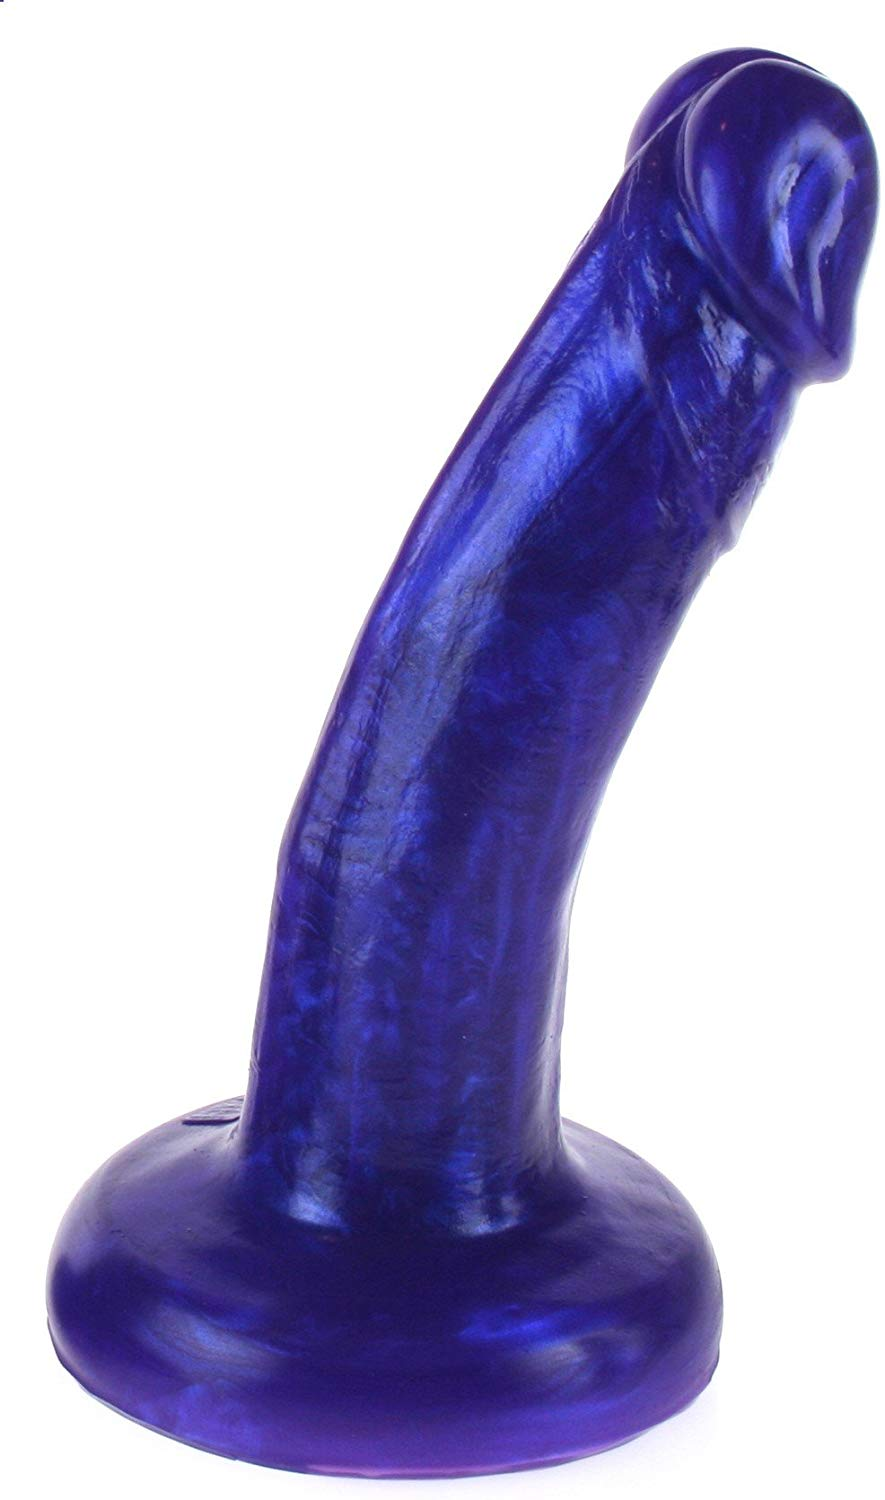 What Are The Best Dildos For Beginners